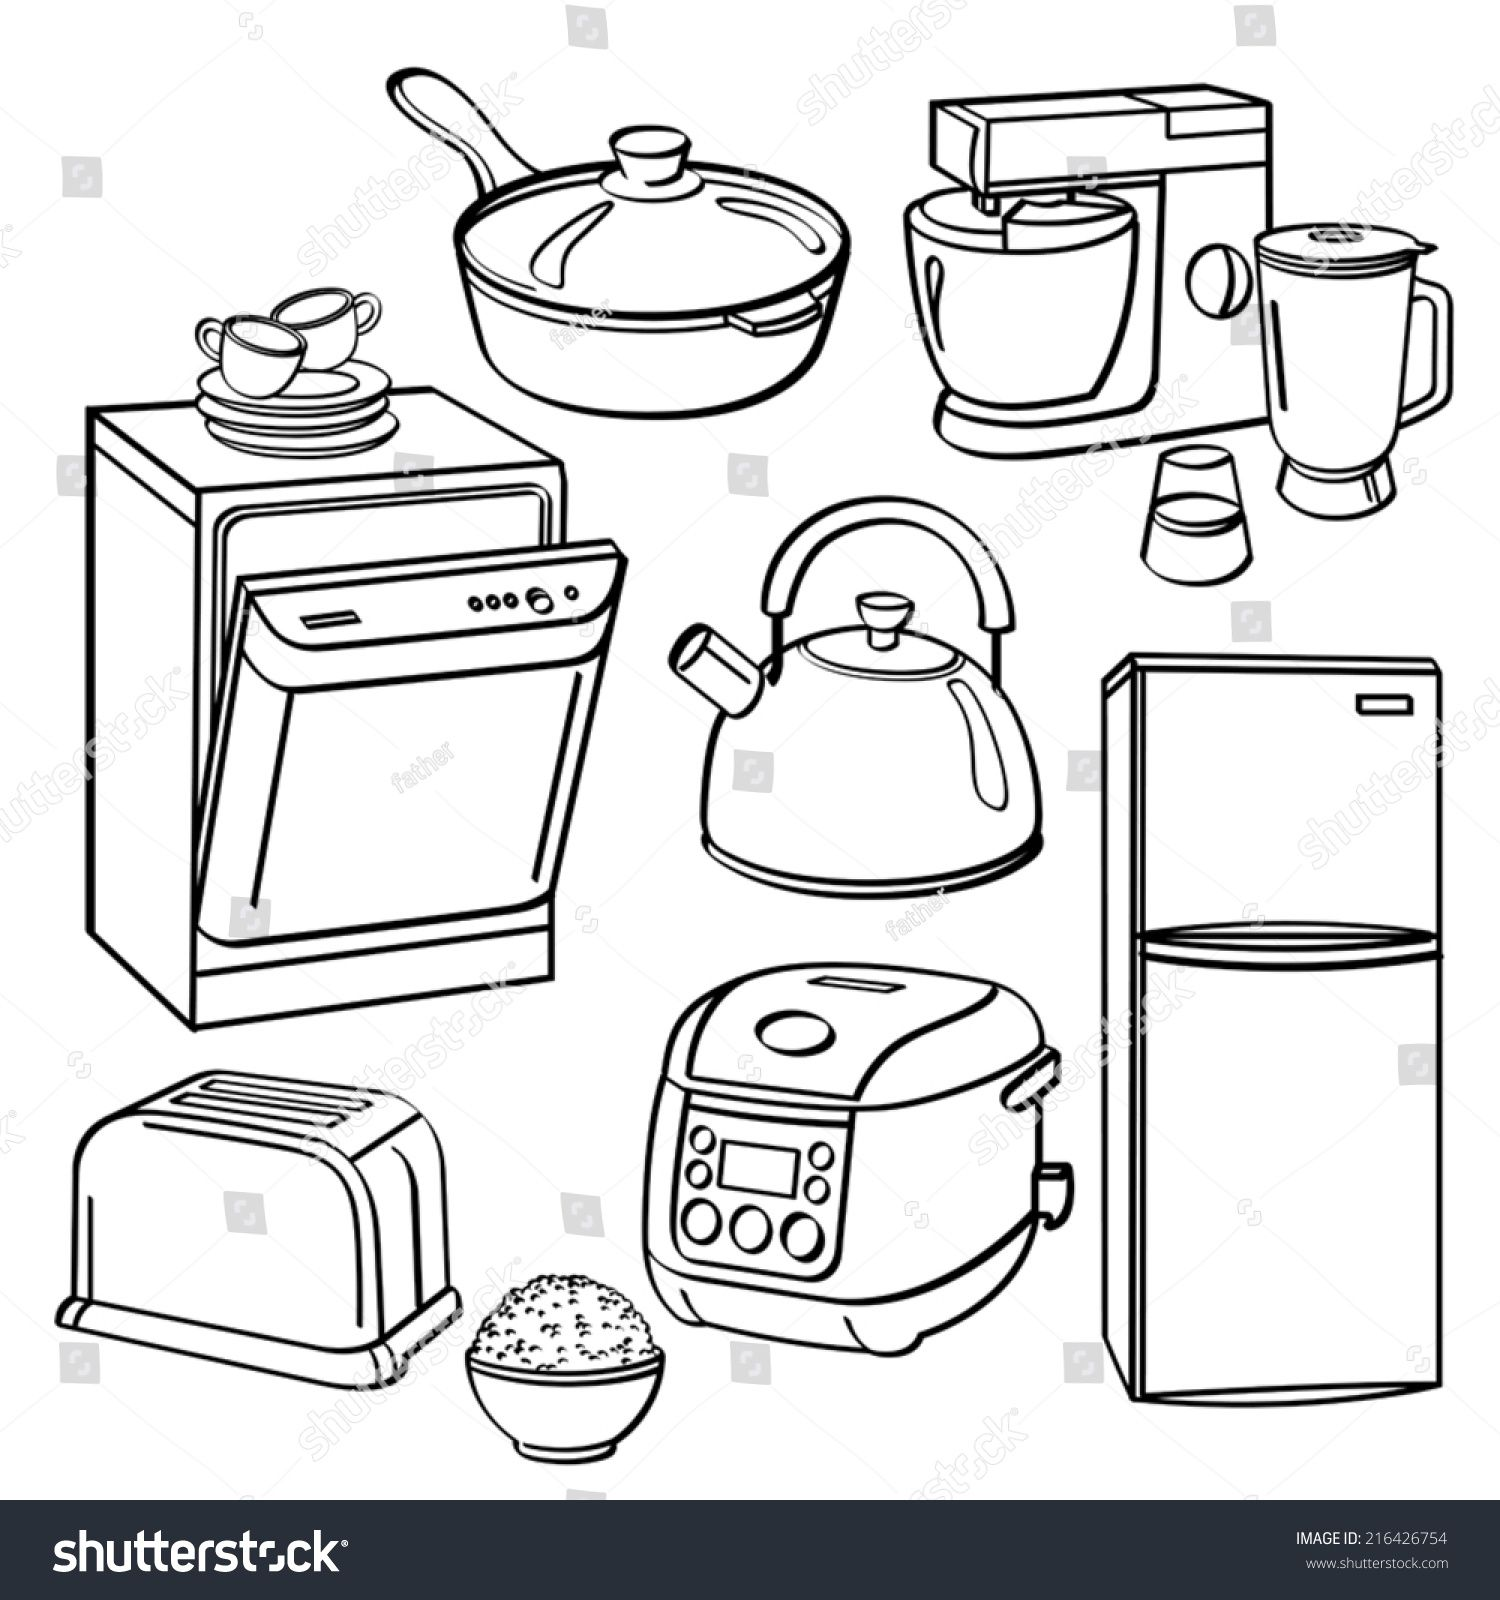 Kitchen Utensils And Appliances Ad Affiliate Kitchen Utensils Appliances Coloring Pages Easy Doodle Art Online Coloring Pages